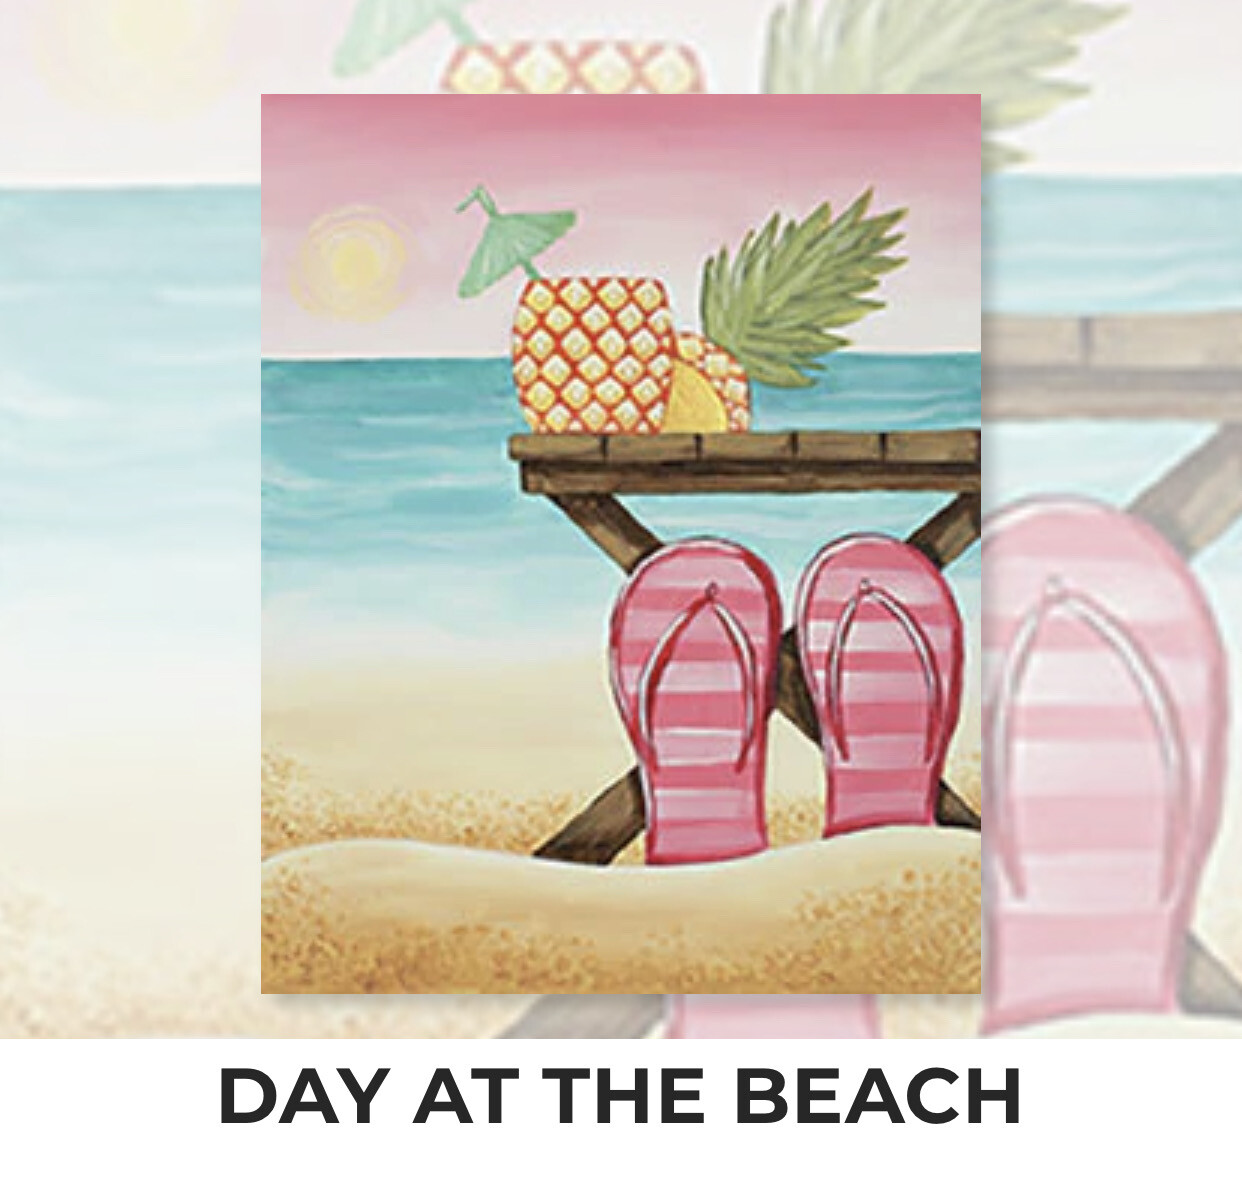 Day At The Beach ADULT Acrylic Paint On Canvas DIY Art Kit - 3 Week Special Order